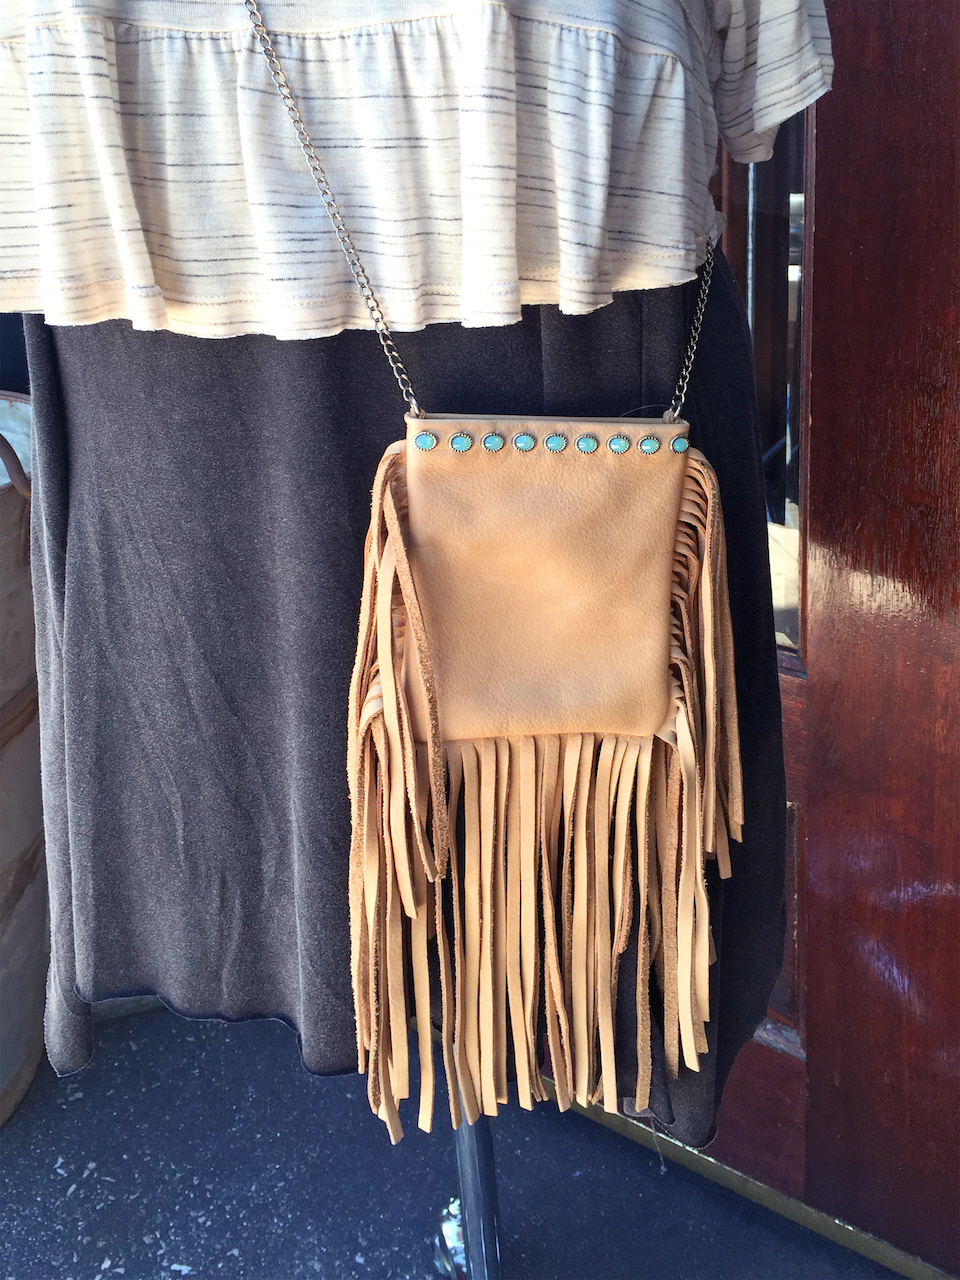 Fringe is a must for every festival, and layering adds to the effortless look of this style.